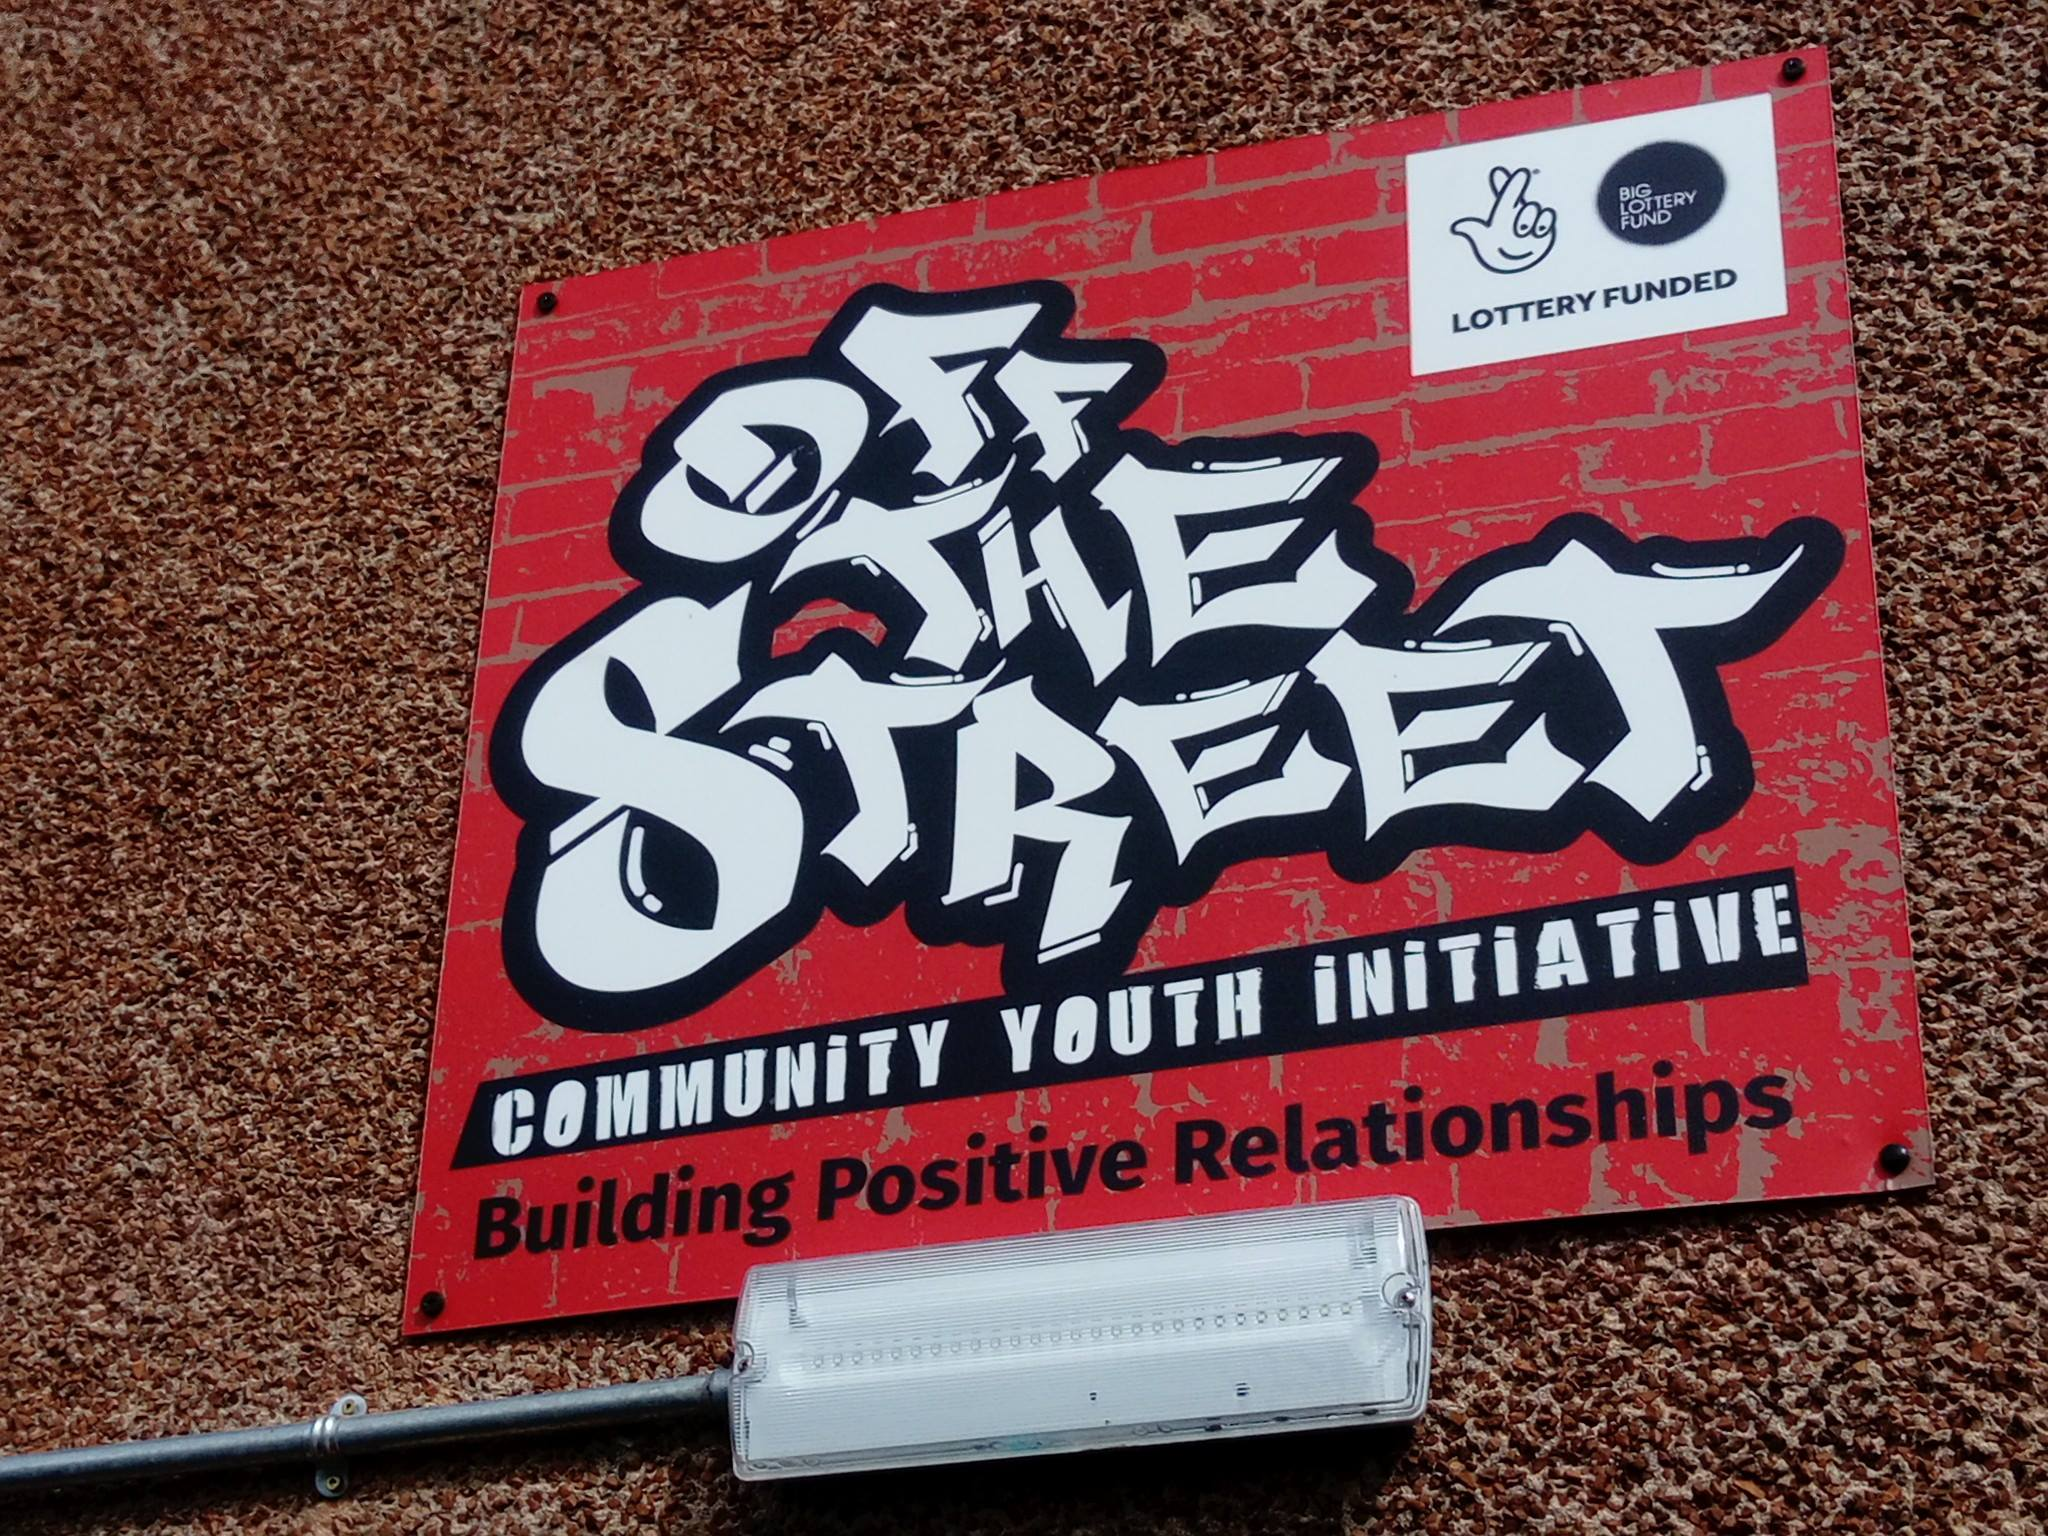 off the street Community Youth Signage